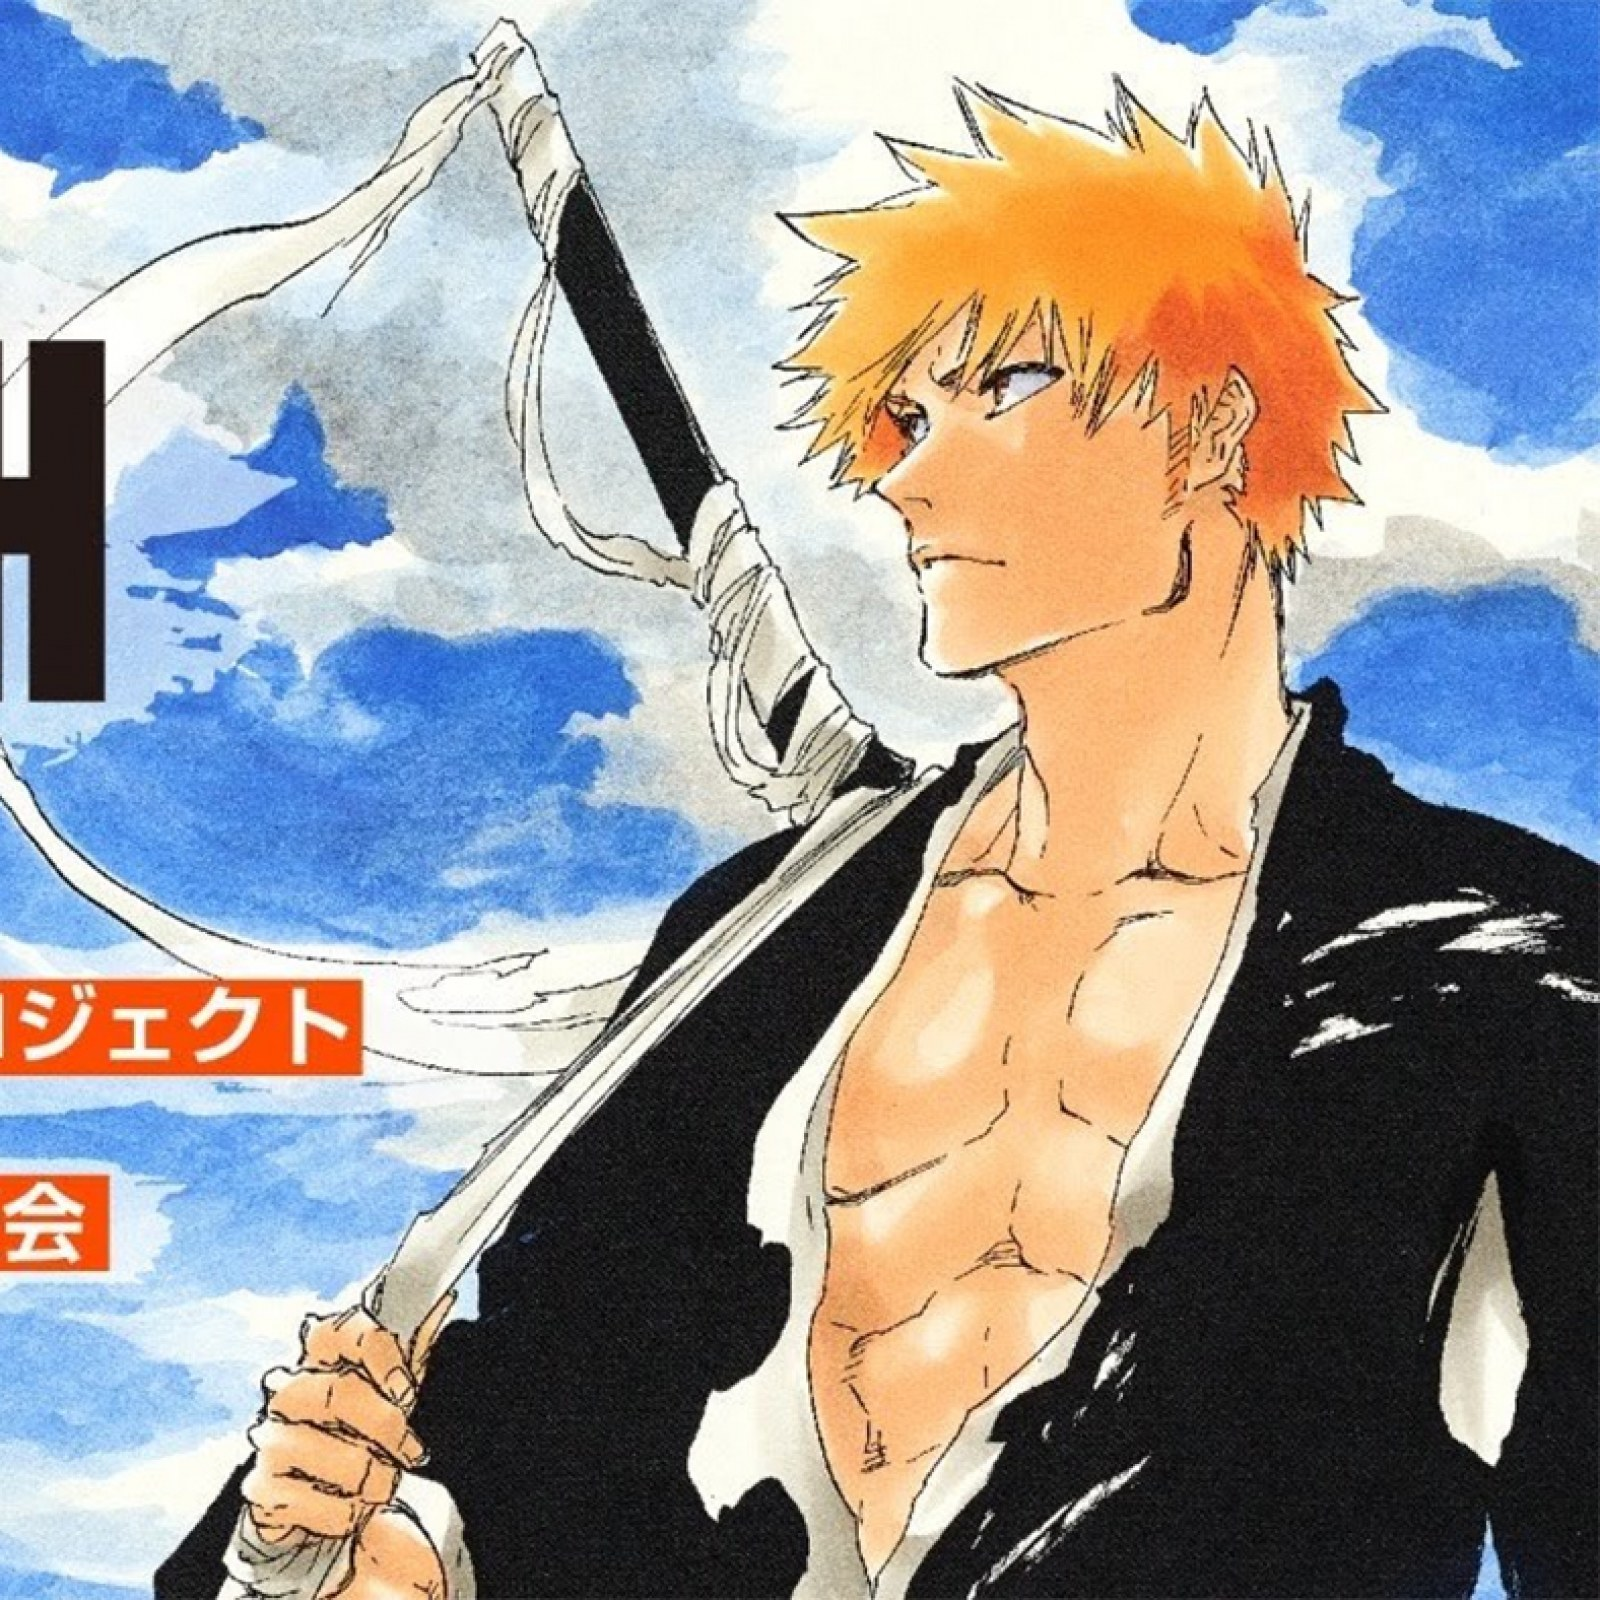 Best New Manga 2021 Bleach' Anime to Return in 2021; 'Burn the Witch' Gets